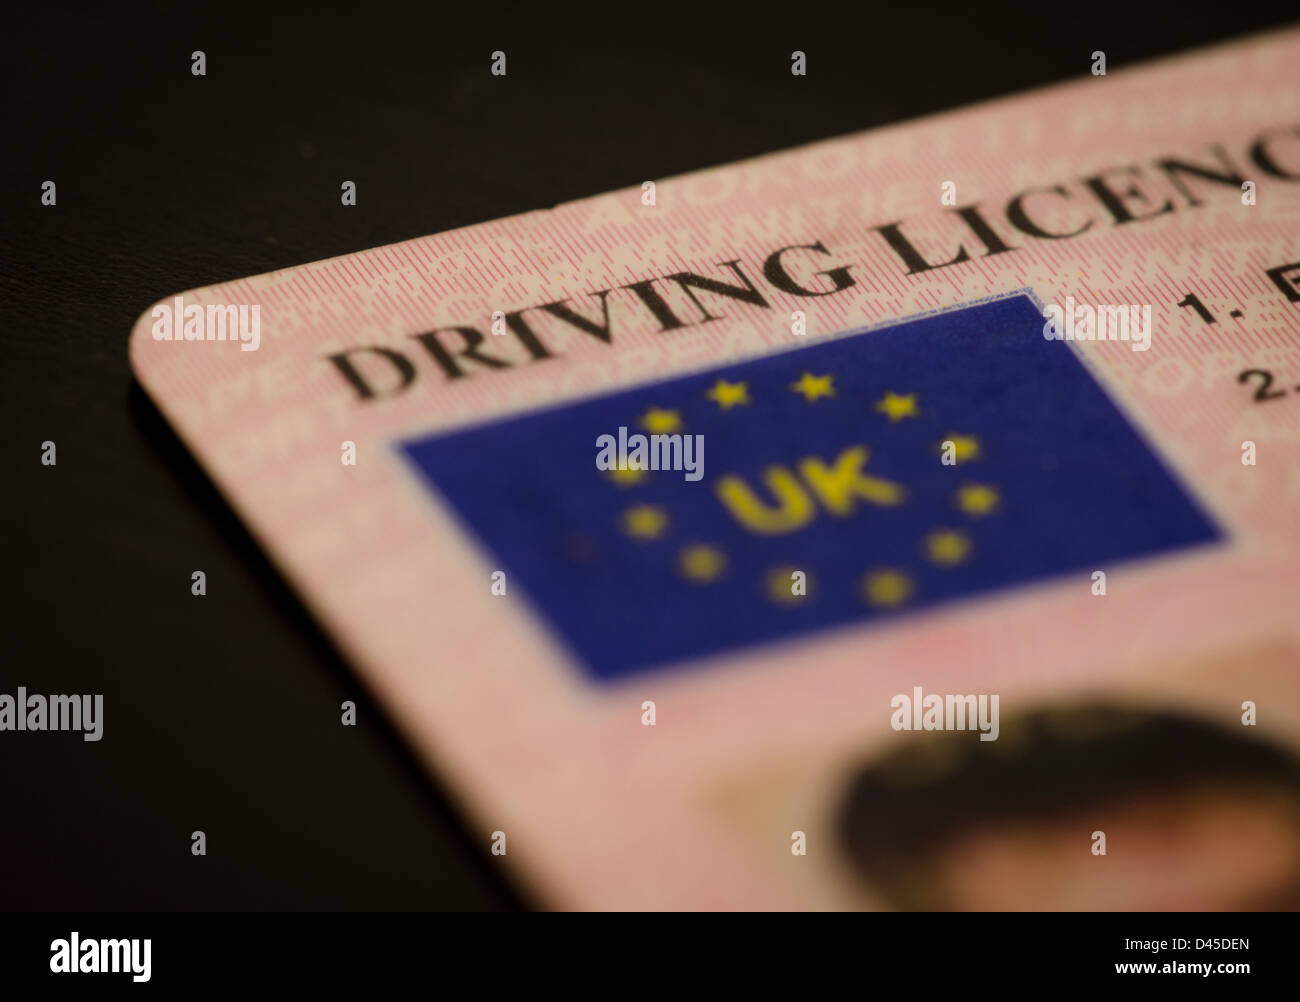 UK Driving License Stock Photo